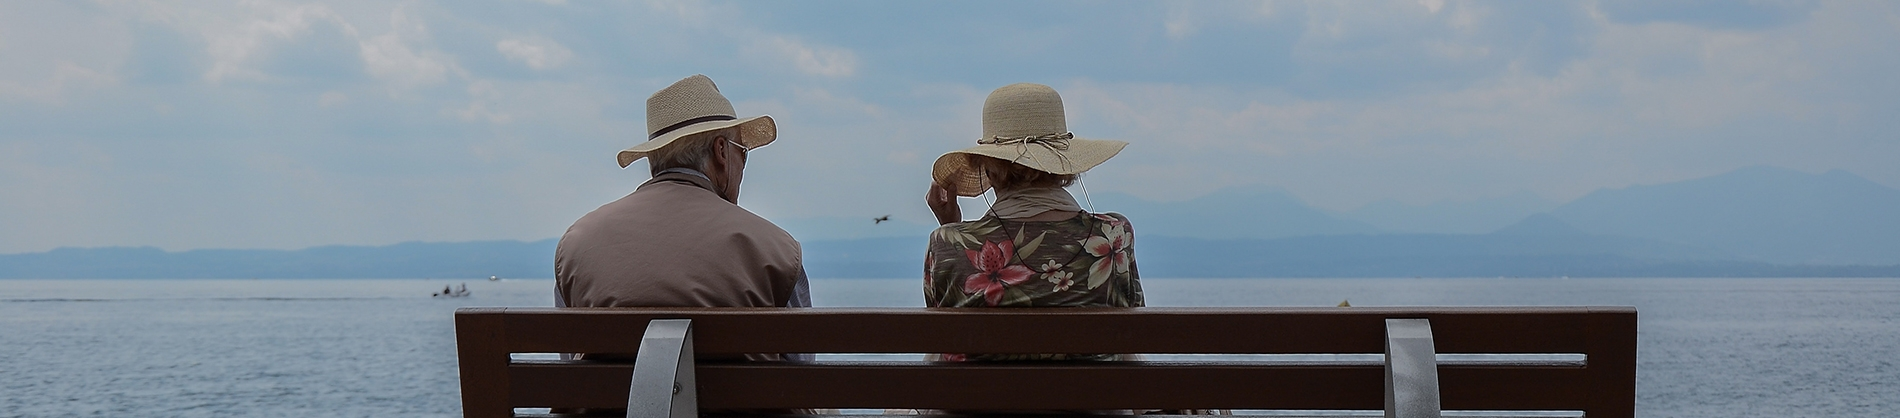 A elderly couple sat on a bench looking out to sea